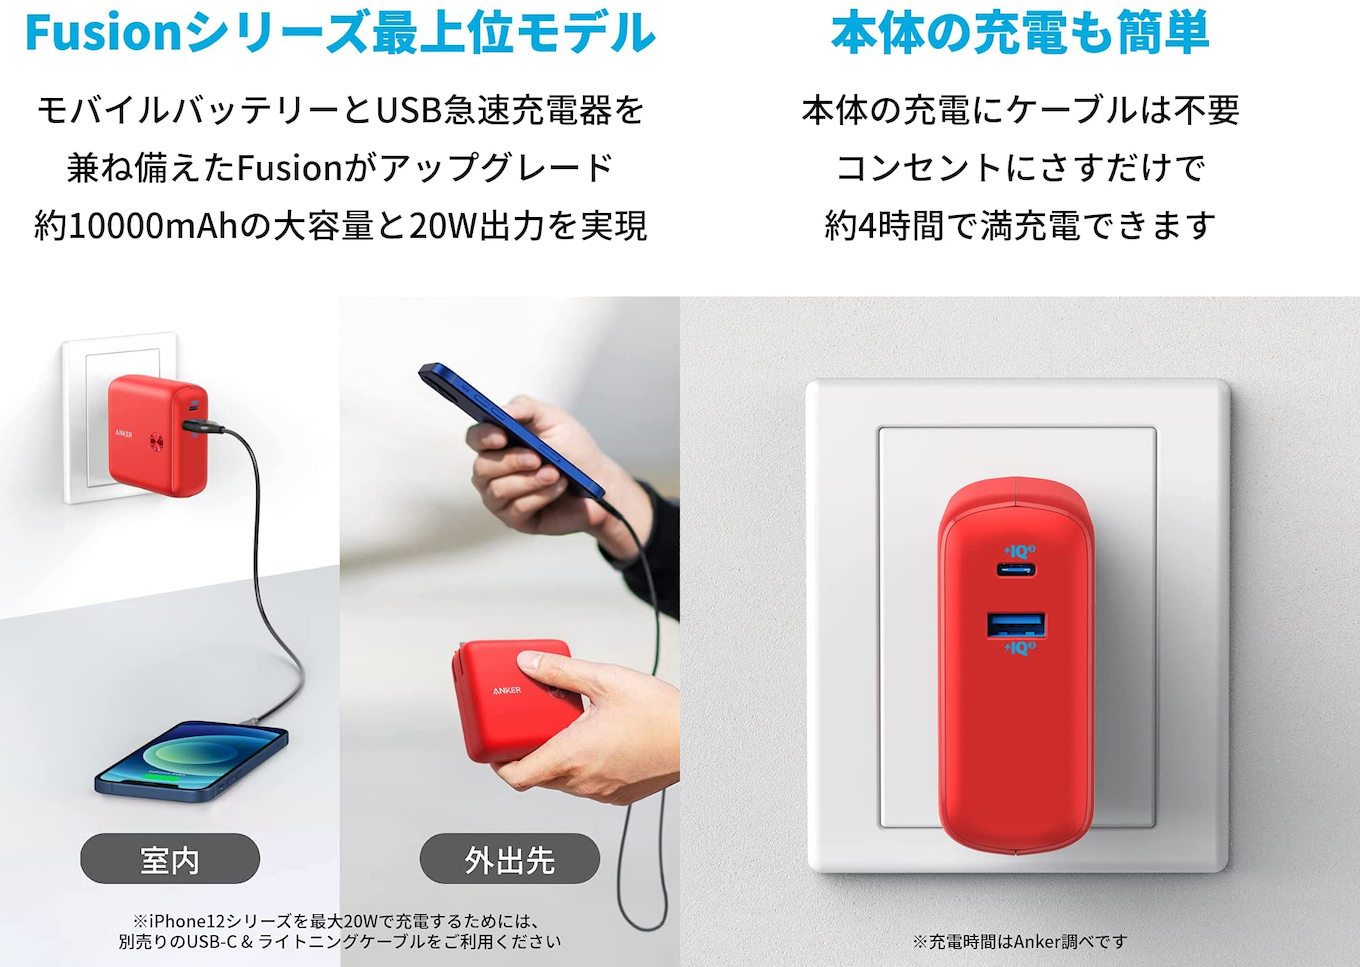 Anker PowerCore Fusion 10000のスペック